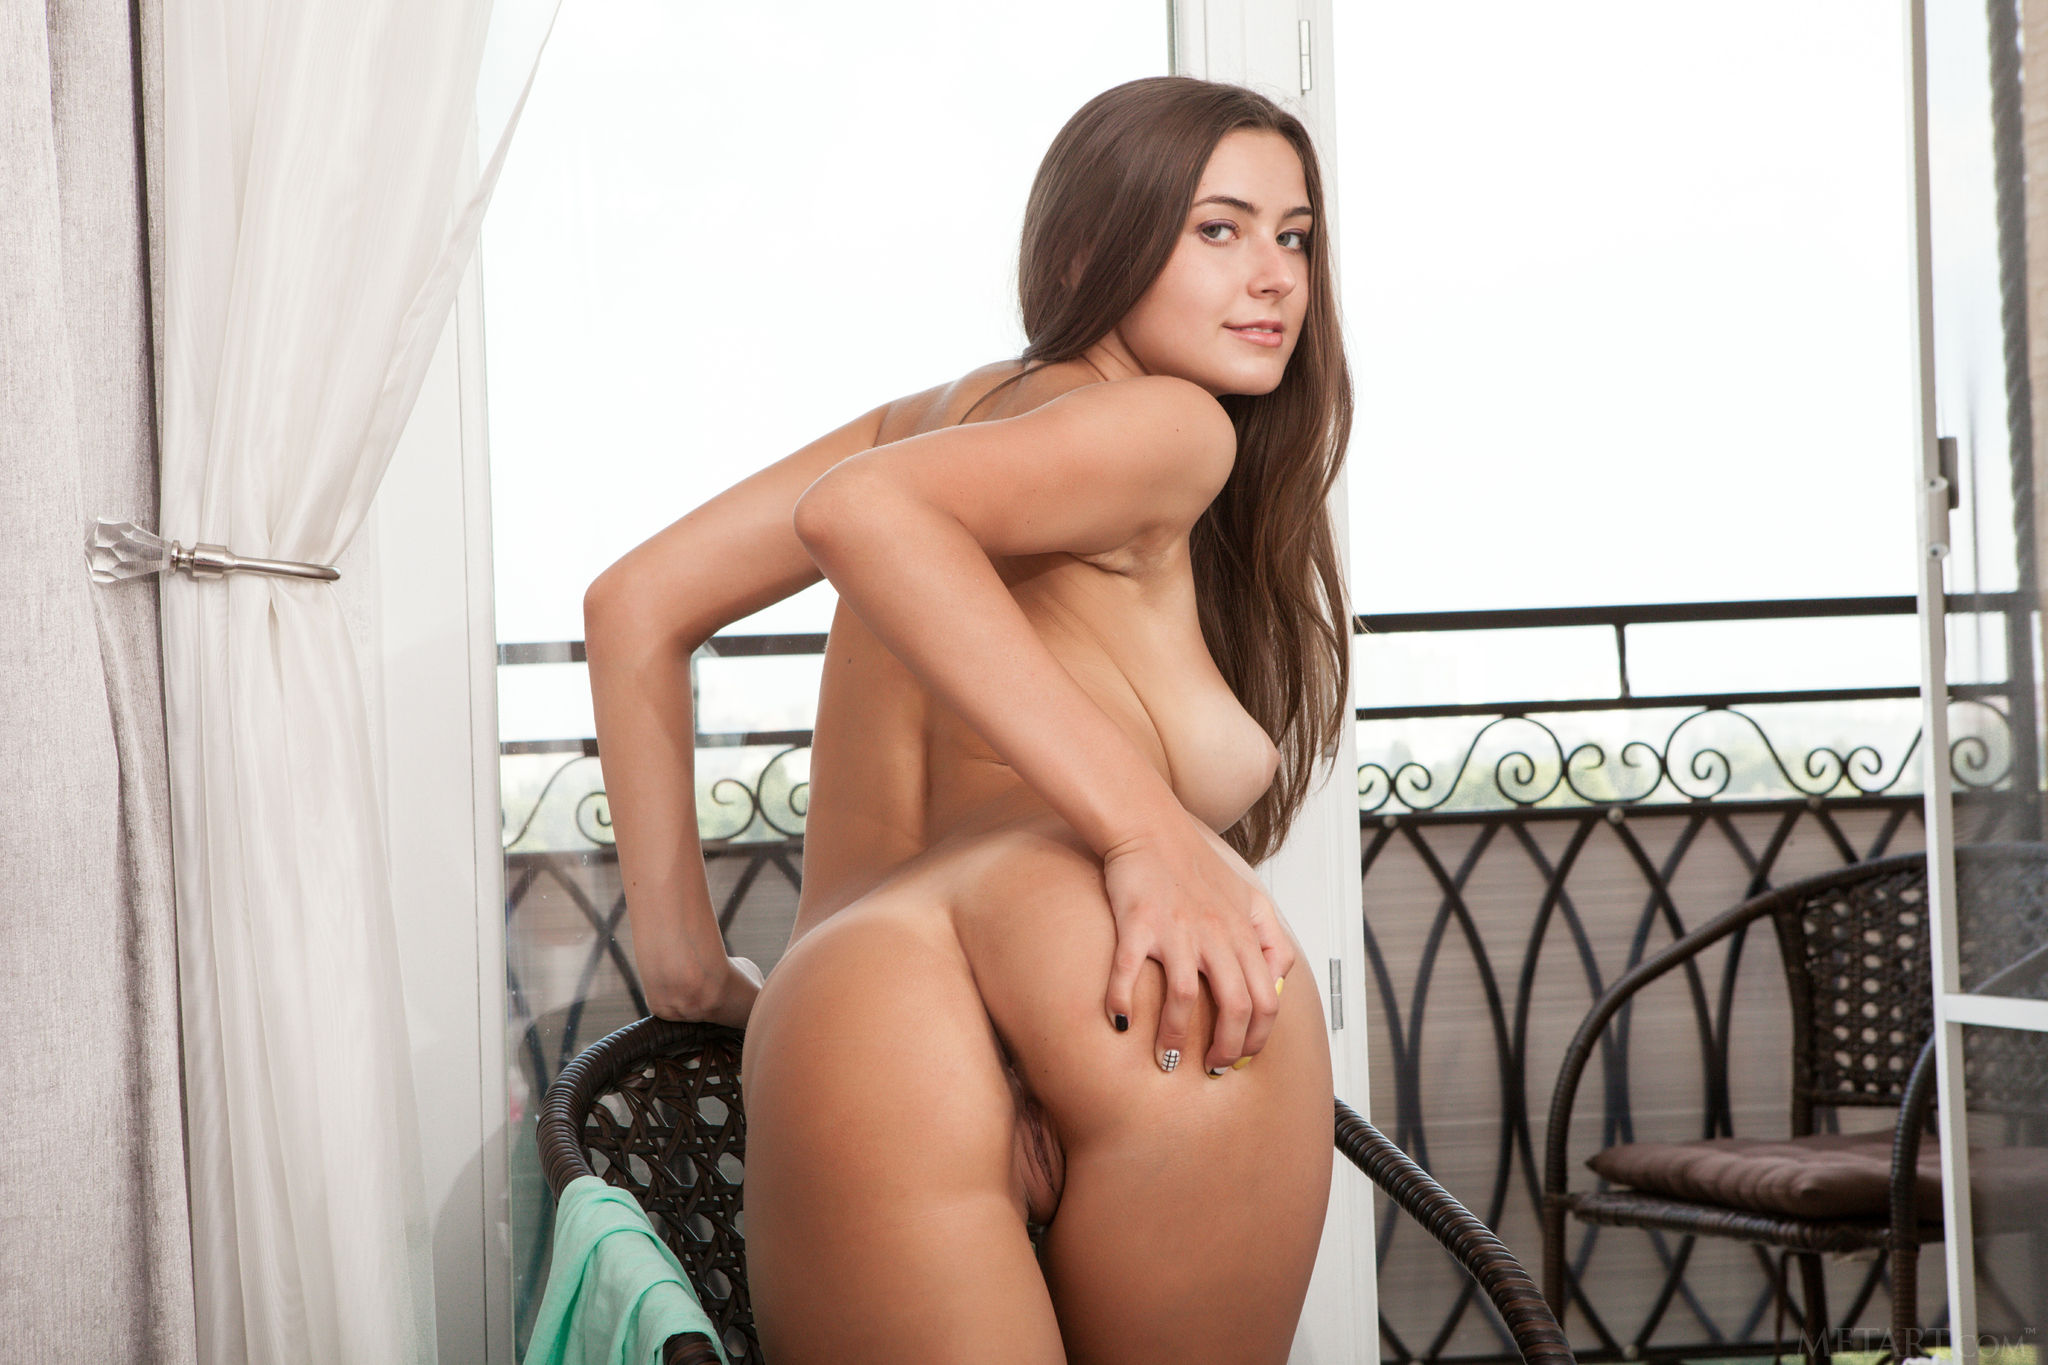 busty-shaved-brunette-muse-with-tanlines-from-met-art-16.jpg